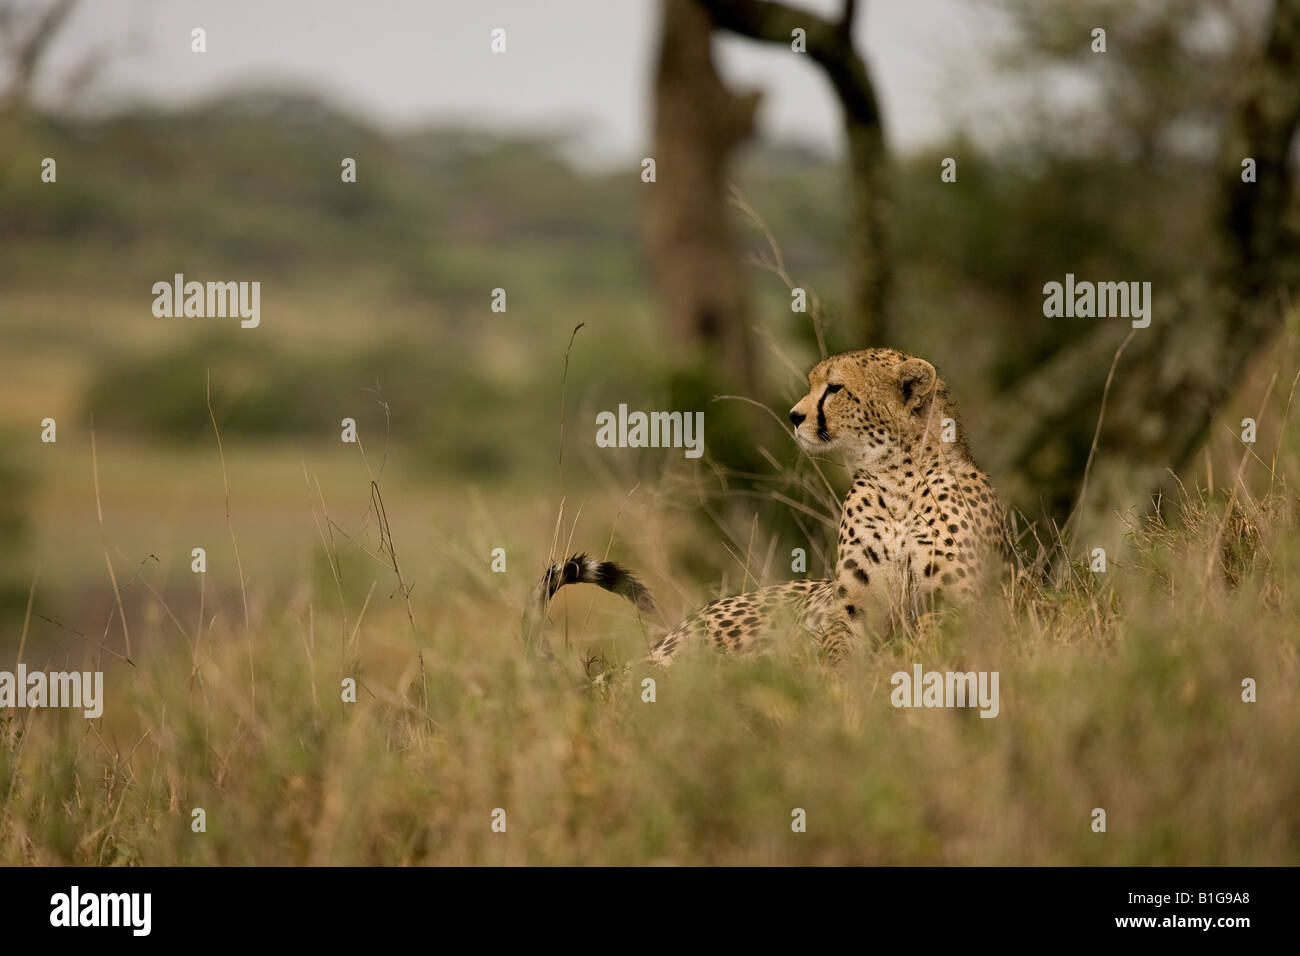 Cheetah lying in the grass in the Ndutu region of the Ngorongoro Conservation Area of Tanzania in East Africa - Stock Image